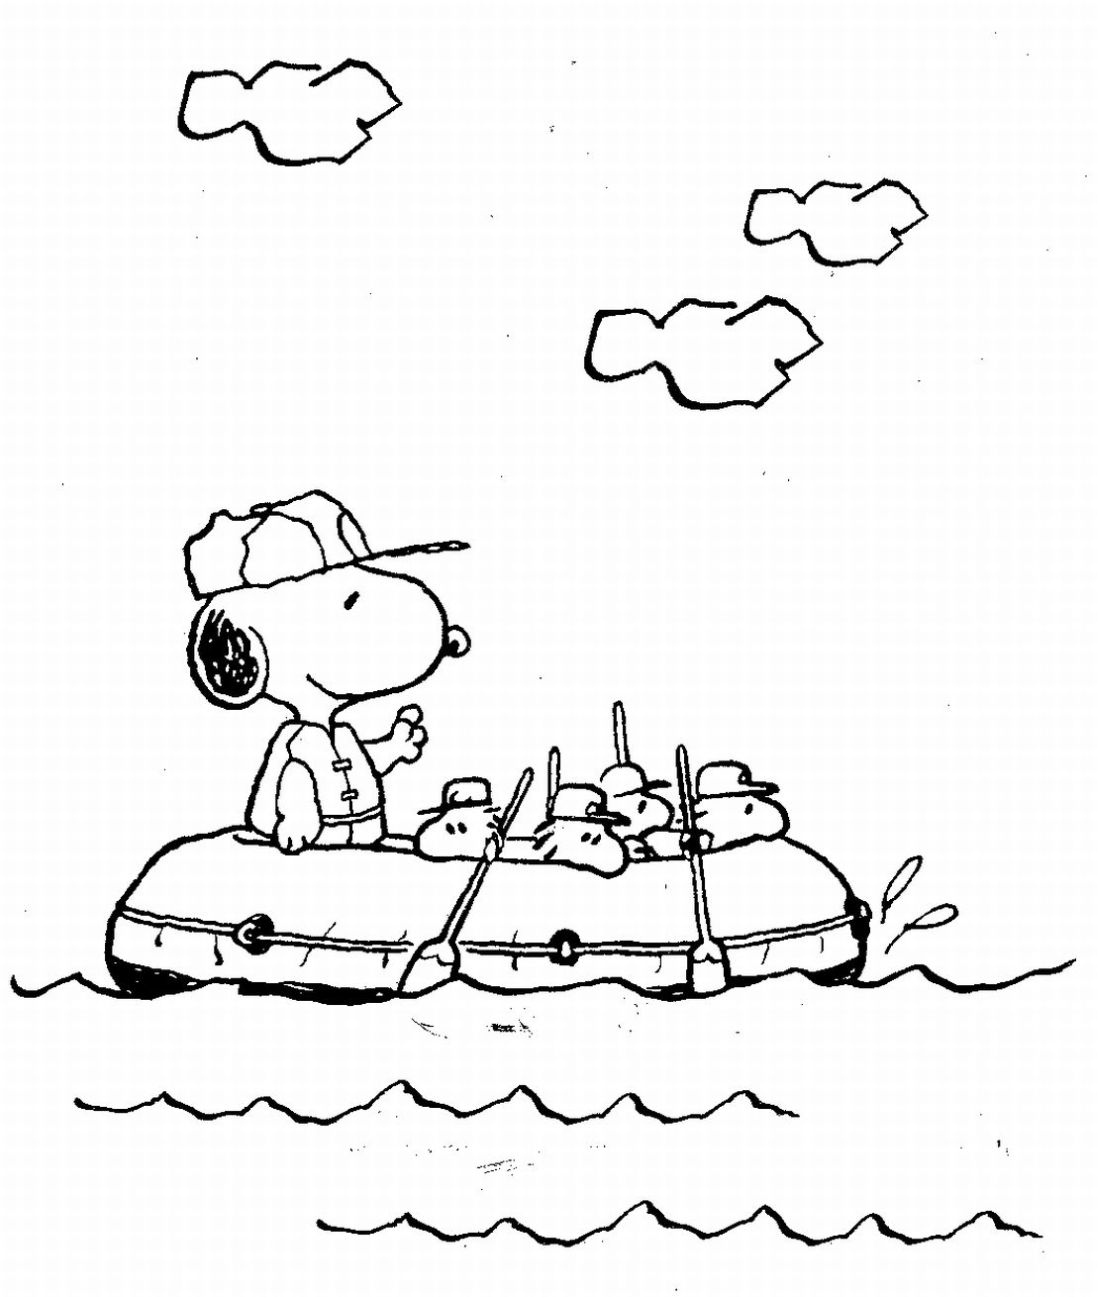 1098x1297 With Free Snoopy Coloring Pages